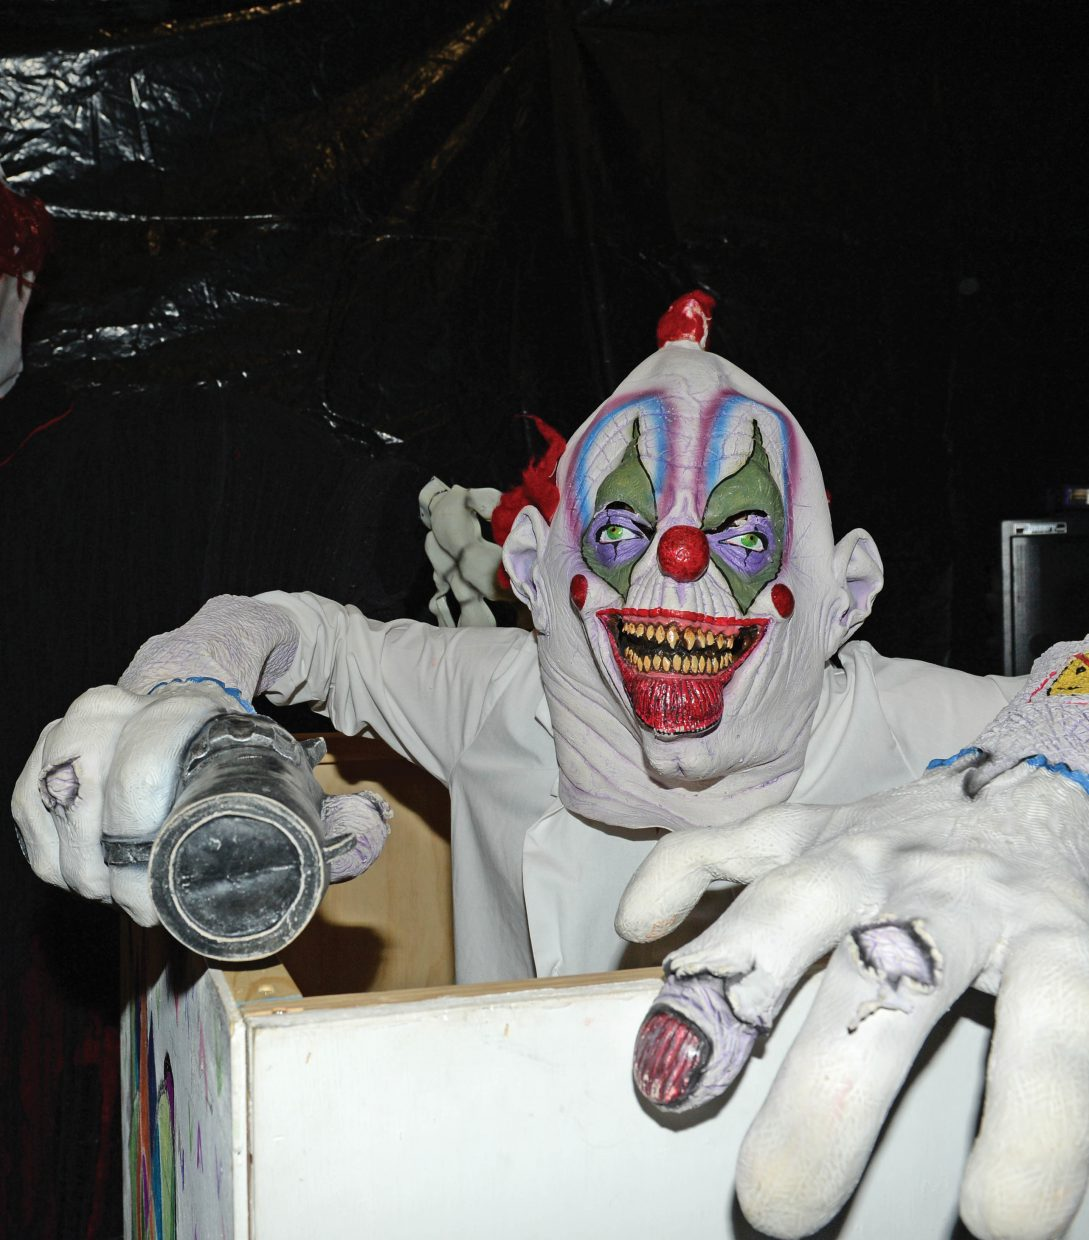 There will be plenty of fright and sights at this year's 18th annual Screamboat Haunted Tour, which will be open from 6 to 10 p.m. Friday, Saturday and Monday at Colorado Mountain College's Alpine Campus in Steamboat Springs.